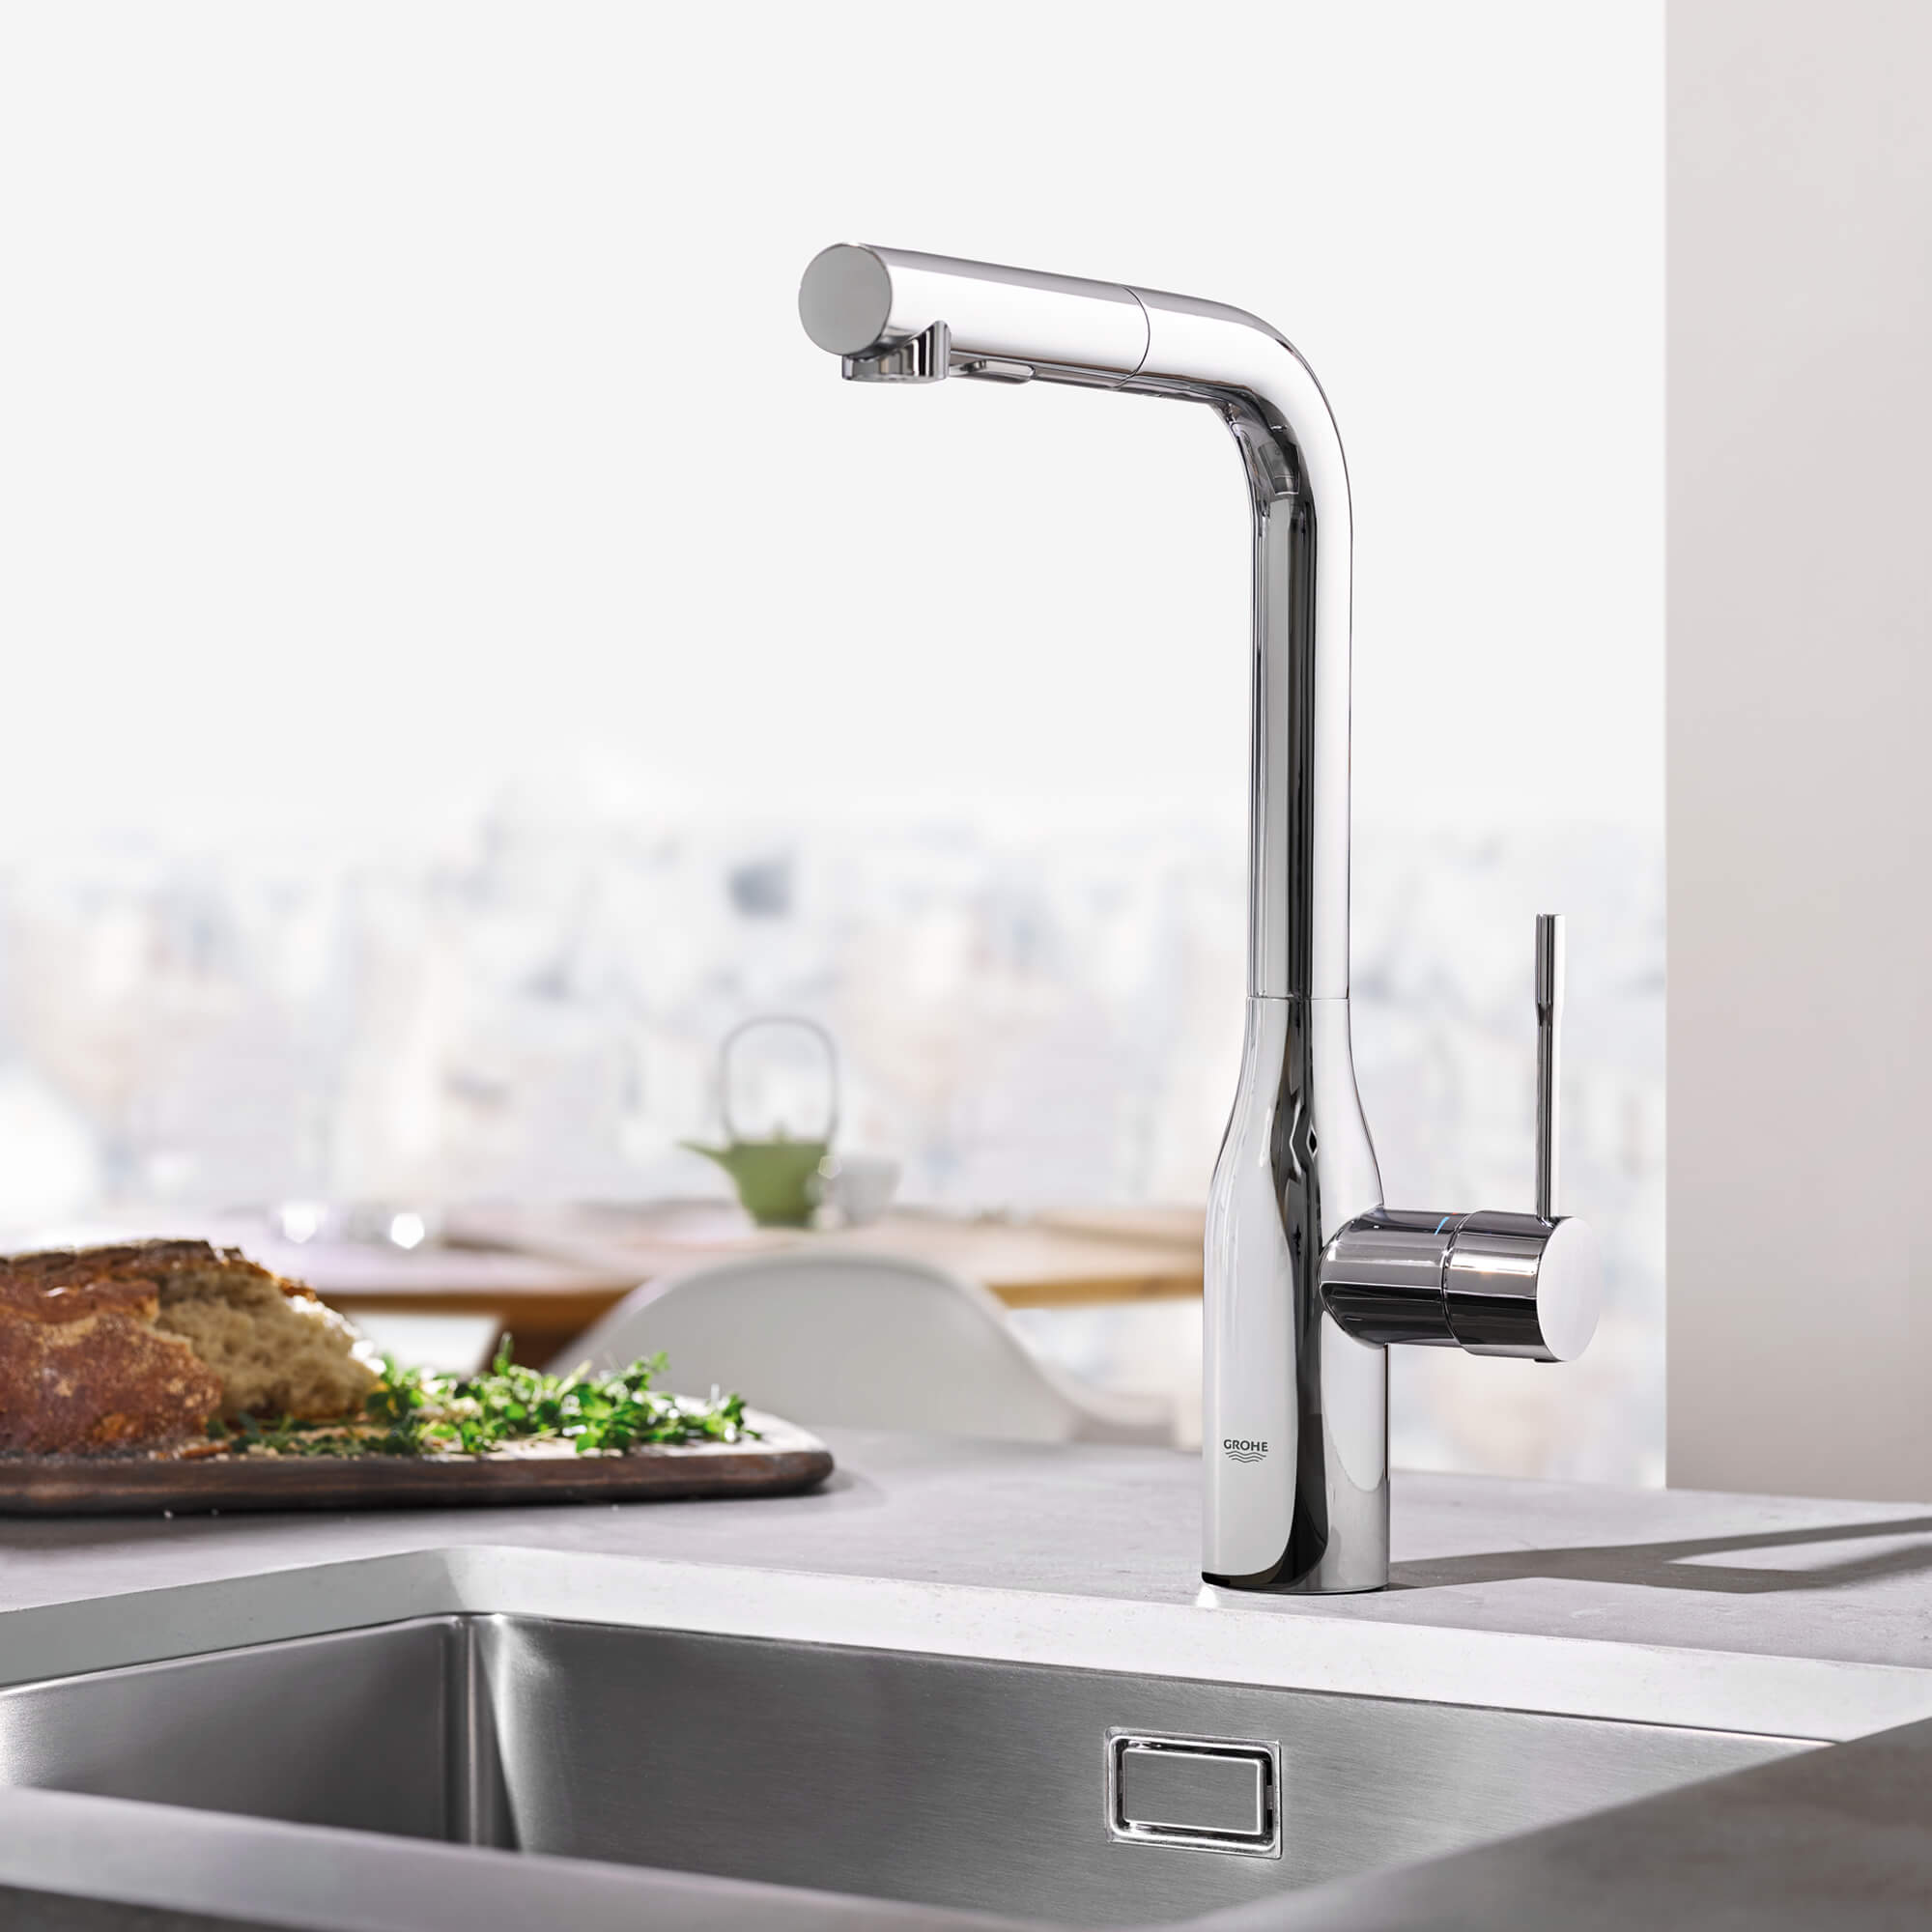 Choosing The Right Kitchen Faucet Kitchen Design Trends Grohe